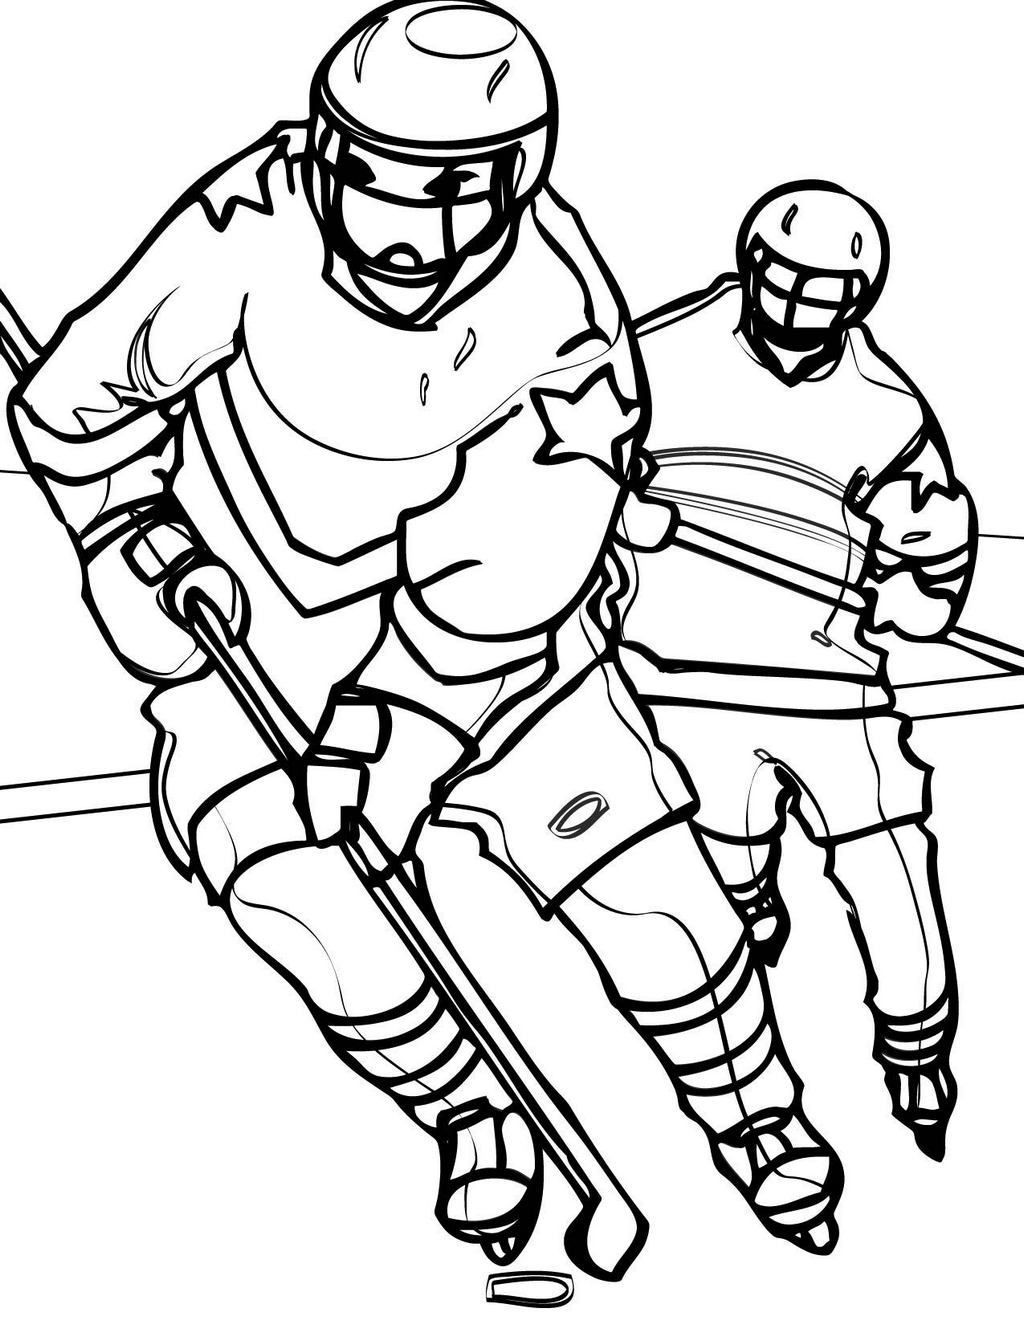 Hockey Jersey And Uniform Coloring Sheet Sports Coloring Pages Coloring Pages For Kids Sports Day Colouring